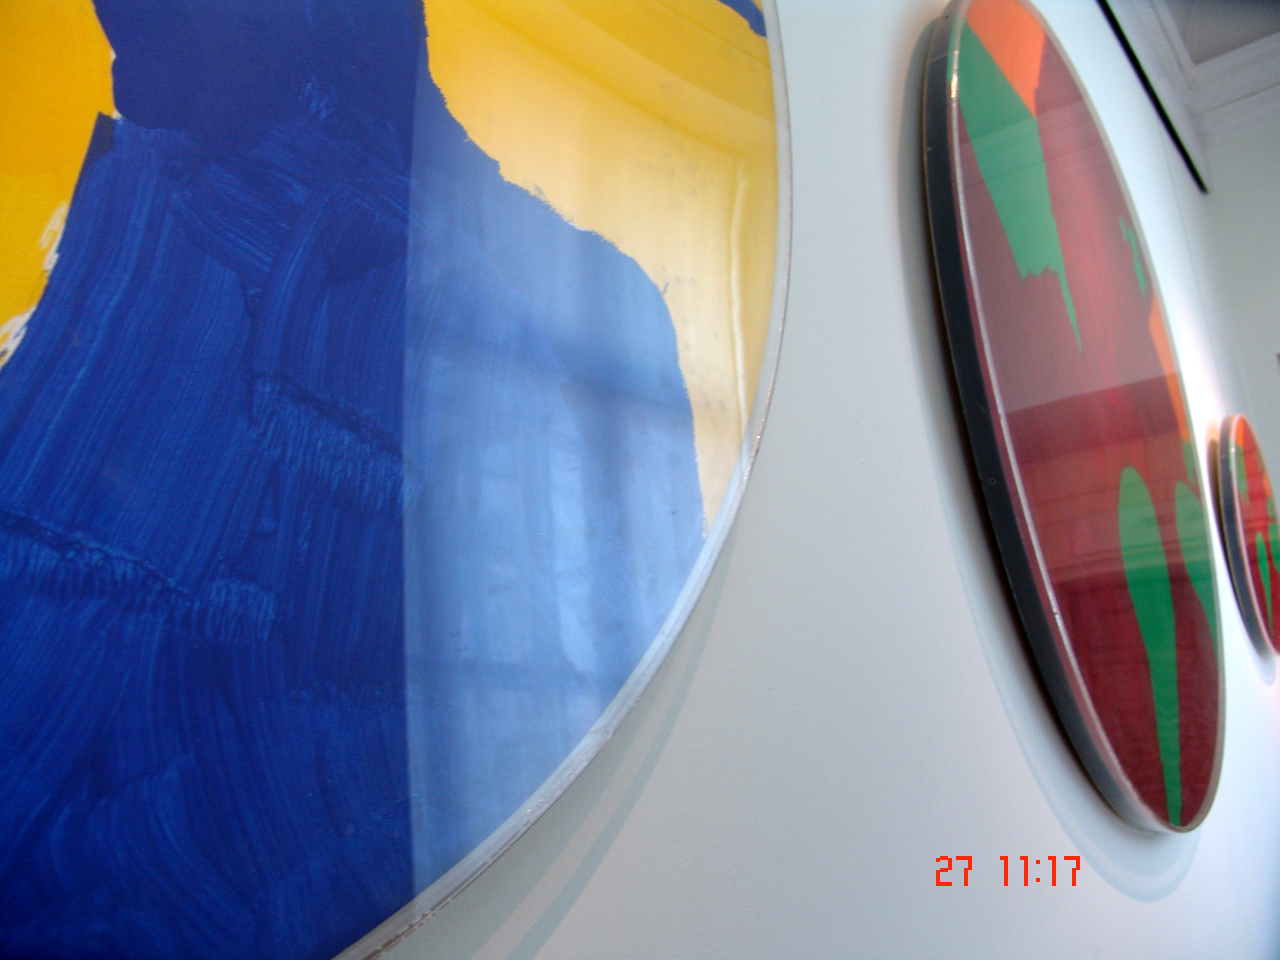 ill 6. Forming of the front side. The paintings have been covered with bent Plexiglas.